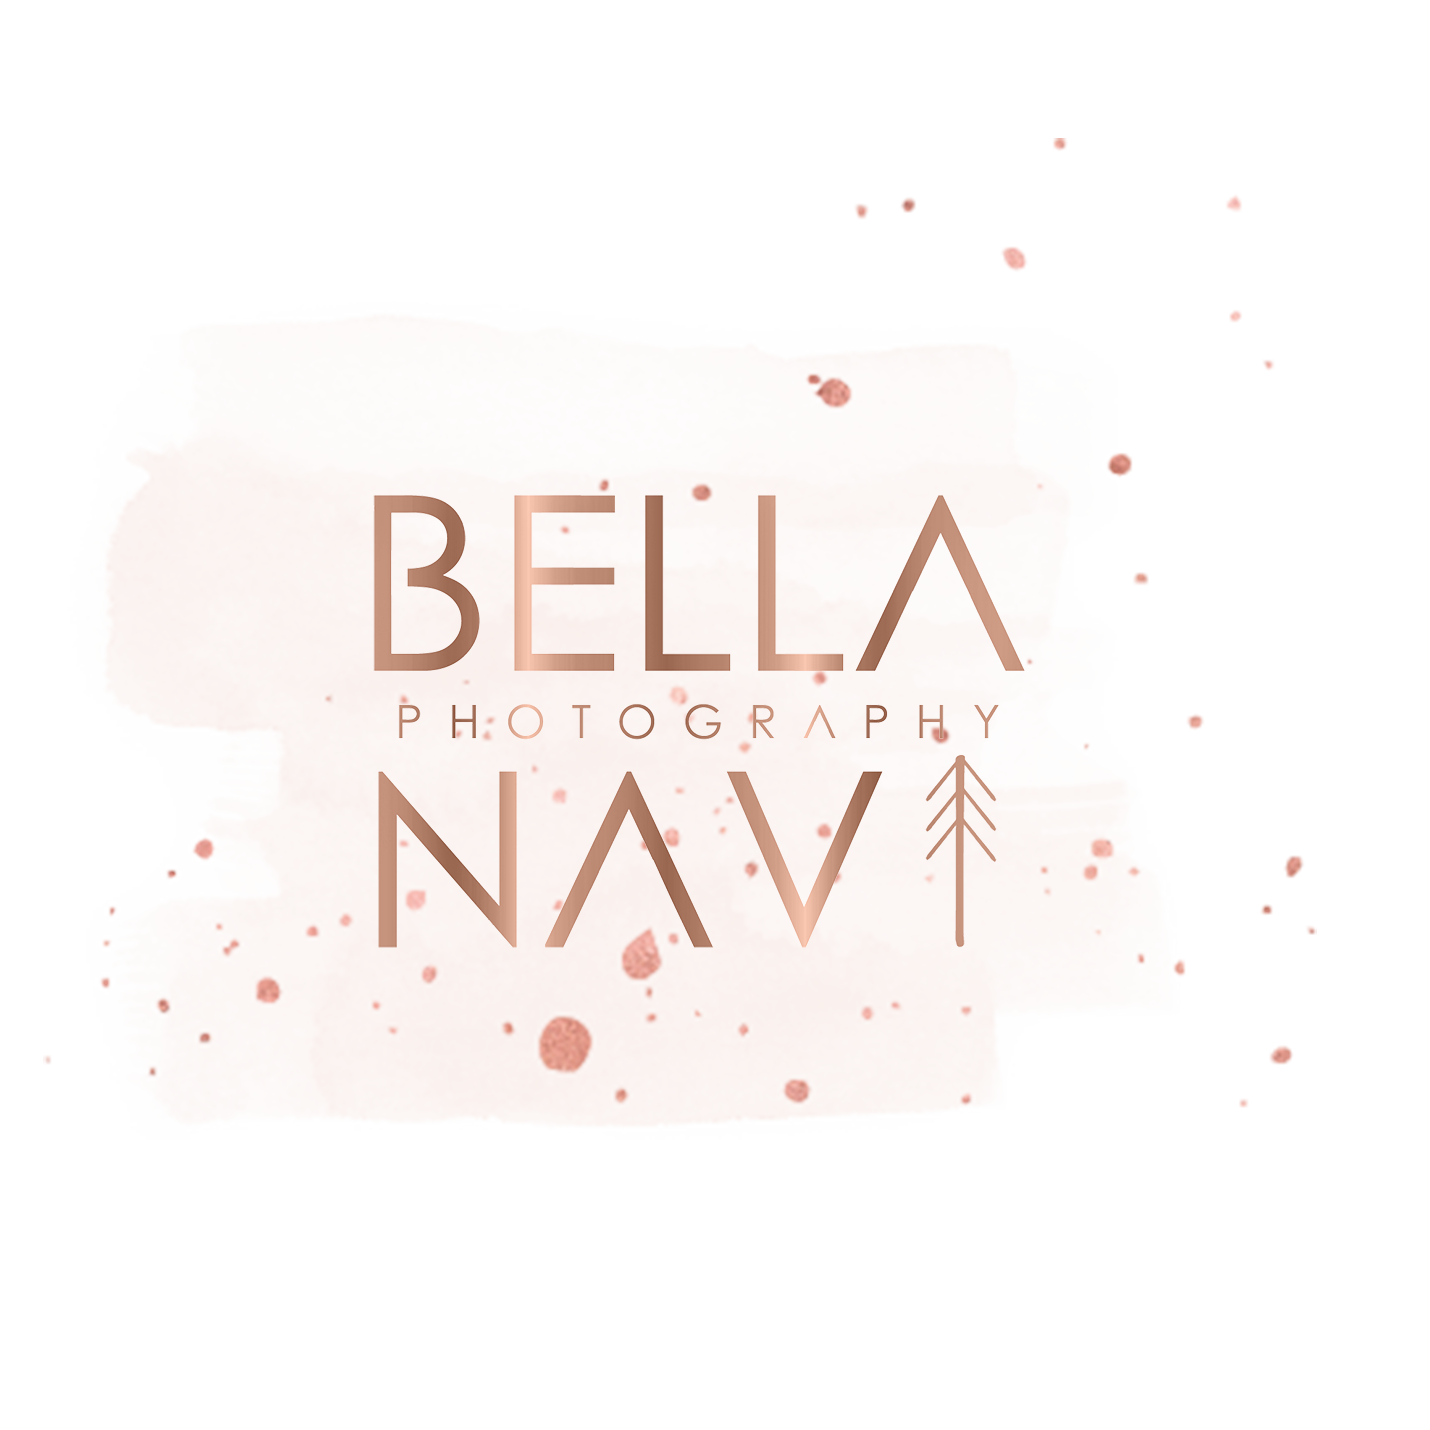 Bella Navi Photography LLC